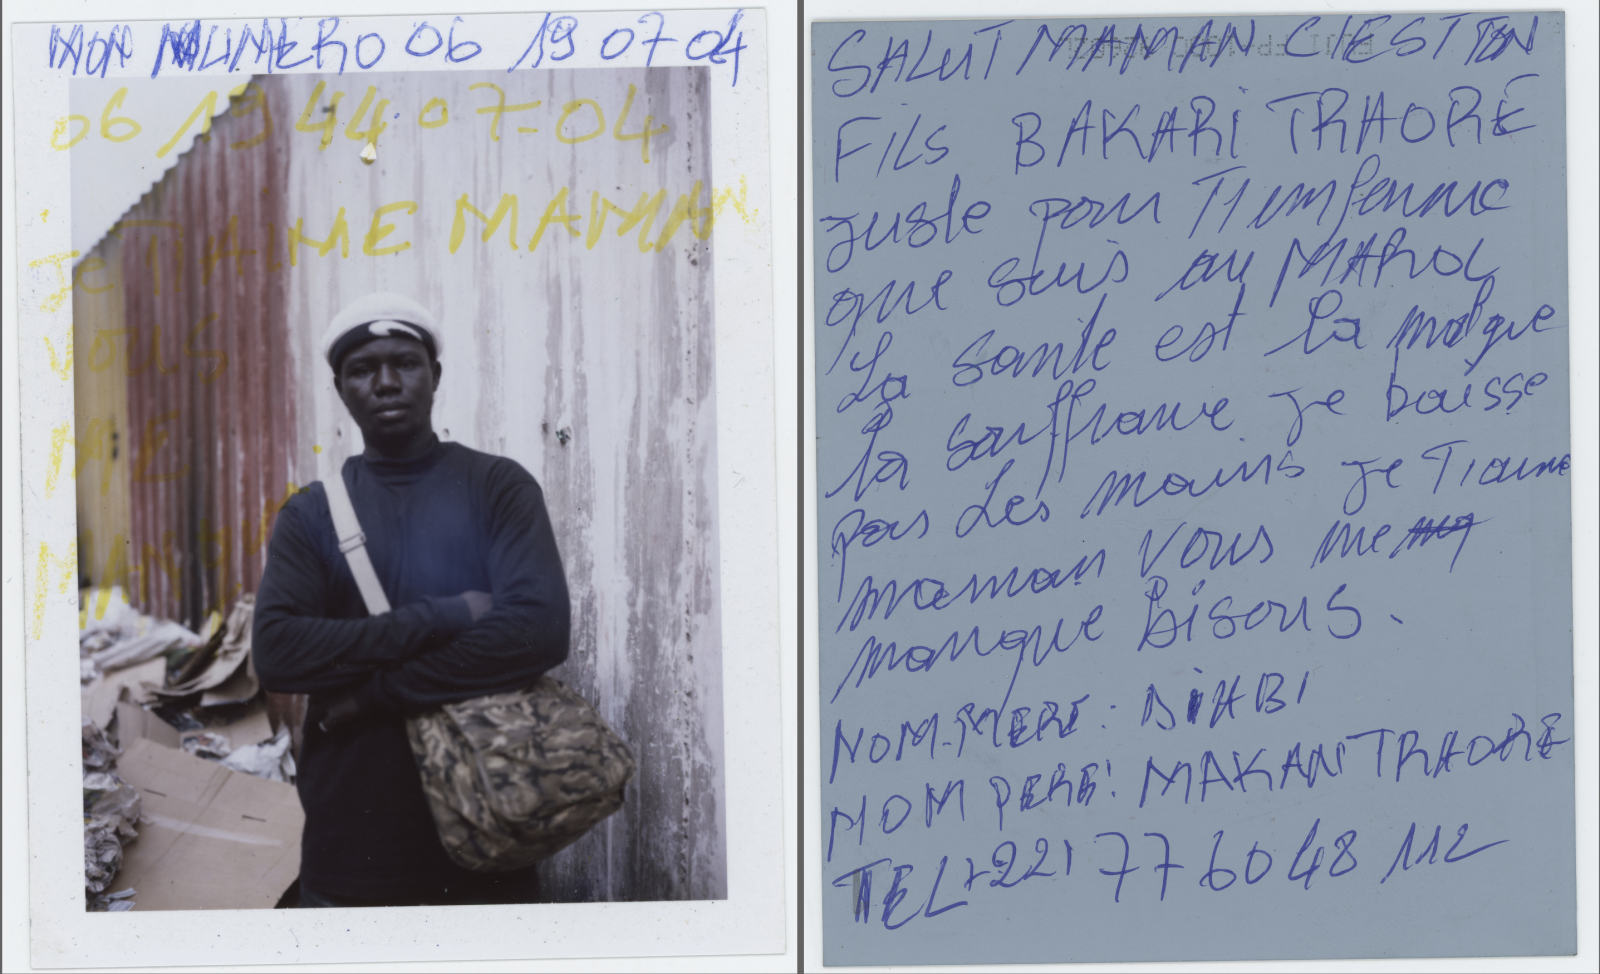 My Number 06190704 0619440704 Hello mom, it's me. Bakari Traore. I just wanted to tell you that I'm ok here in Morocco. I'm healthy besides the suffering. I'm not giving up. I love you mom, miss you all. Kisses